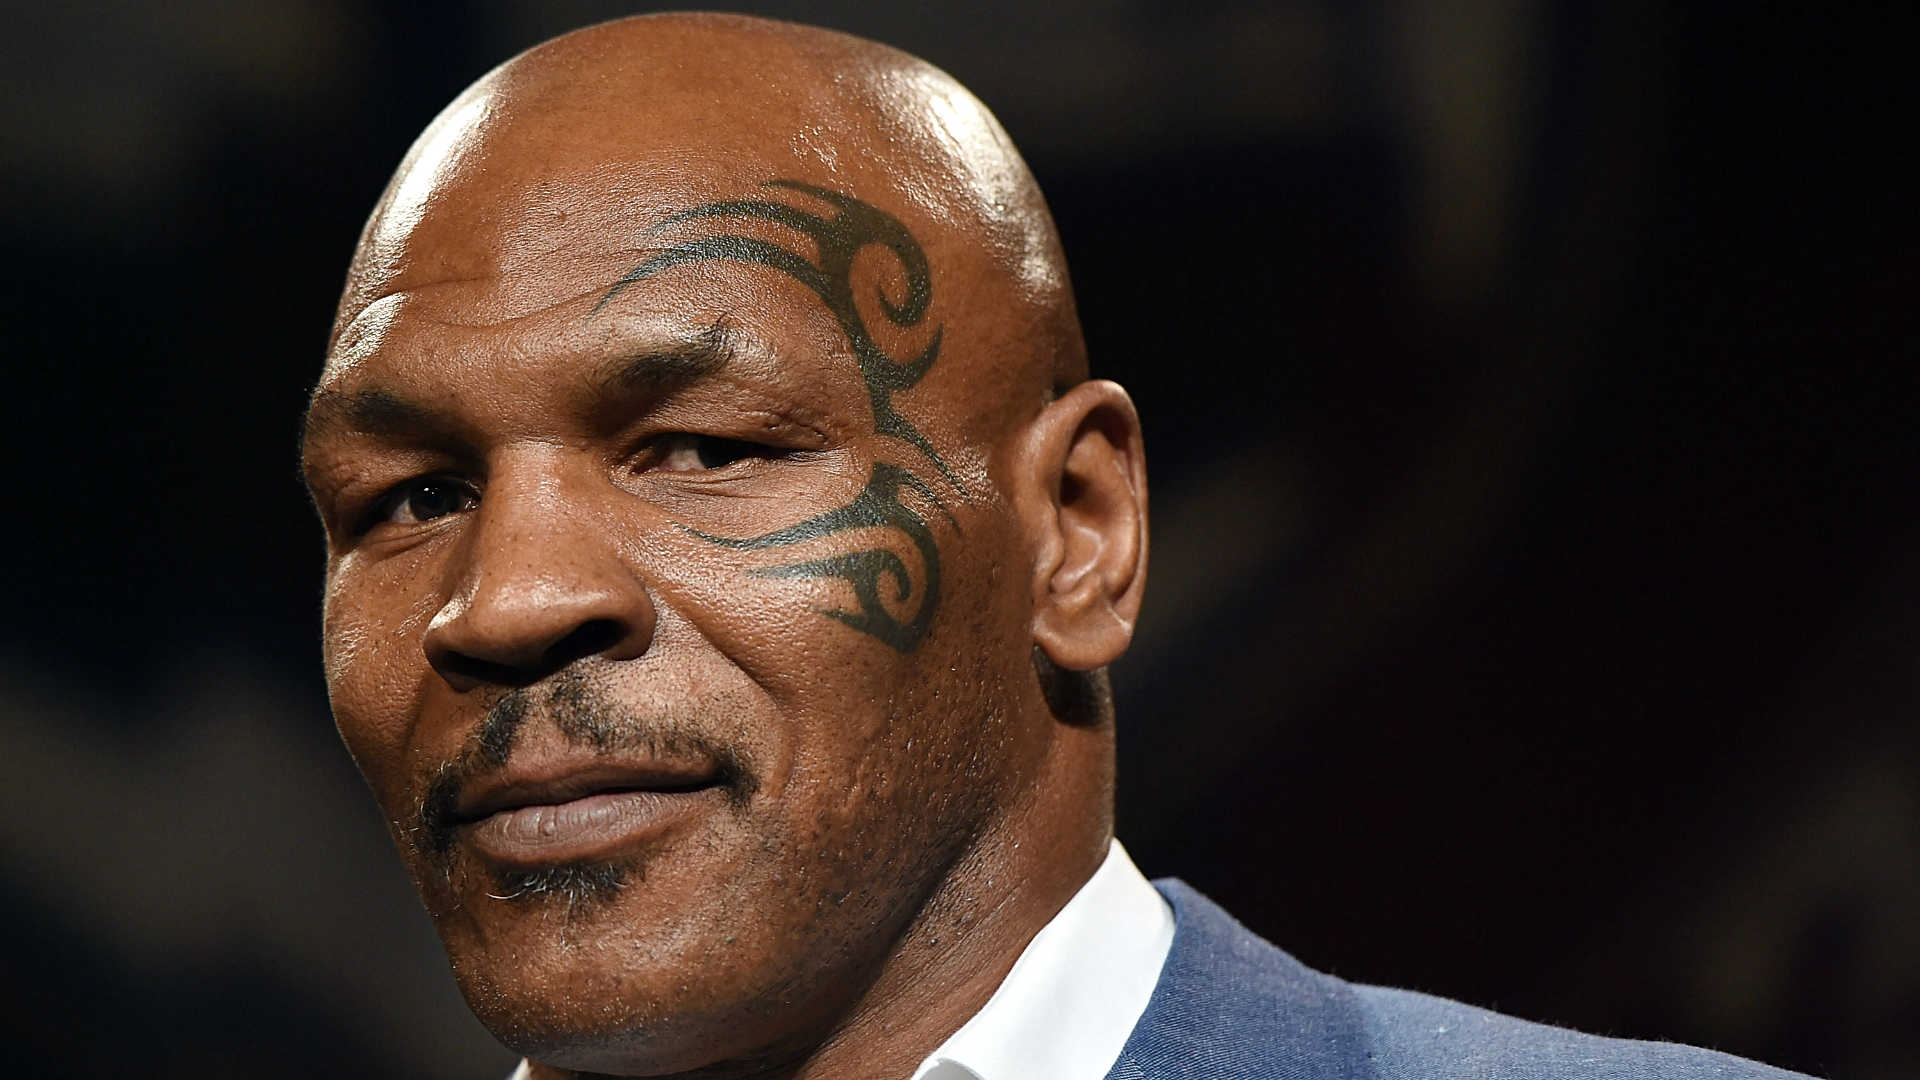 Mike Tyson will face Roy Jones Jr. in exhibition match on September 12 - The Ring